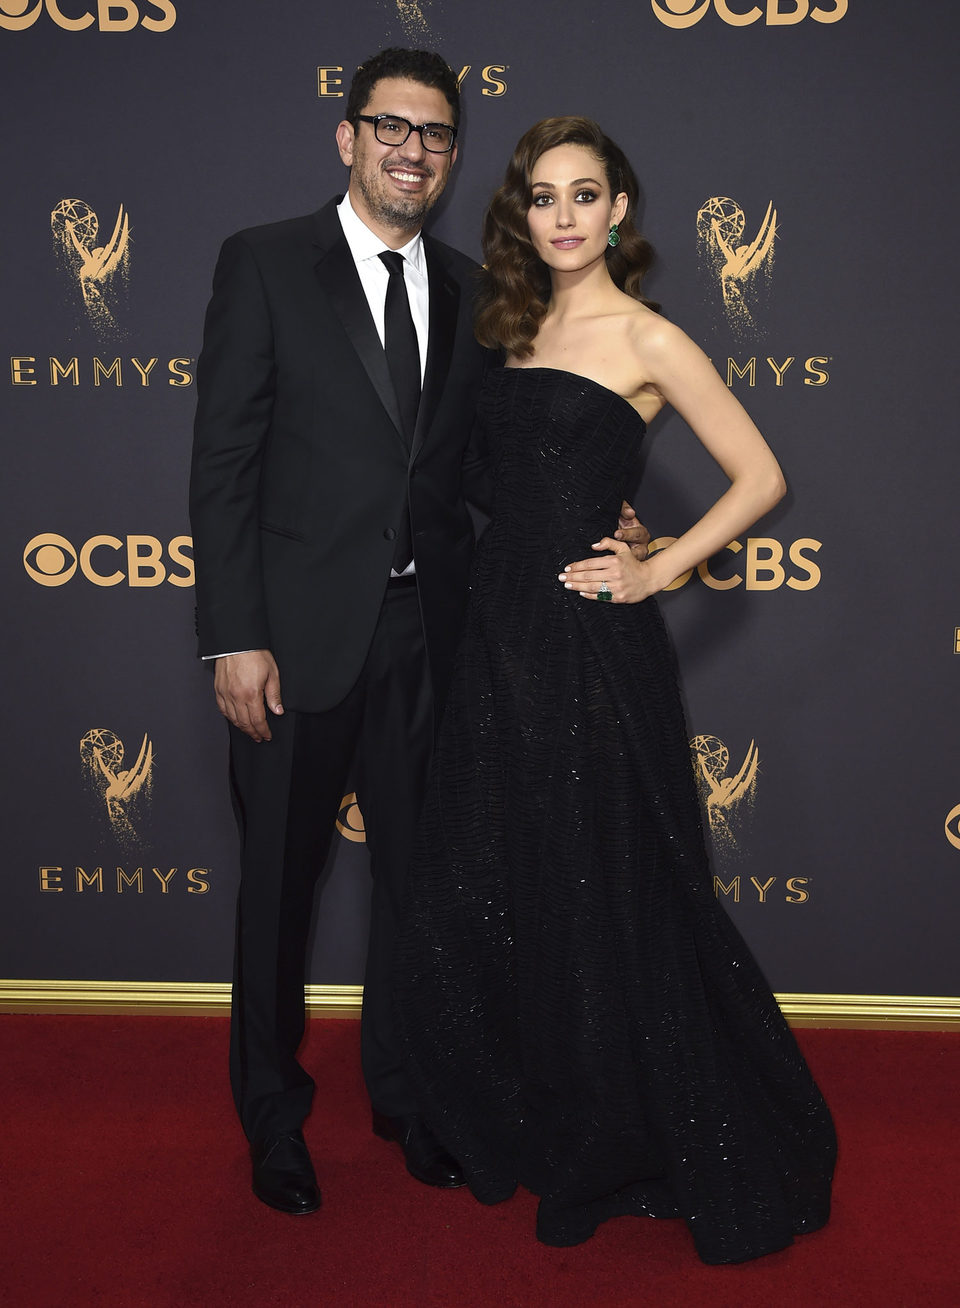 Sam Esmail and Emmy Rossum at the Emmys 2017 red carpet